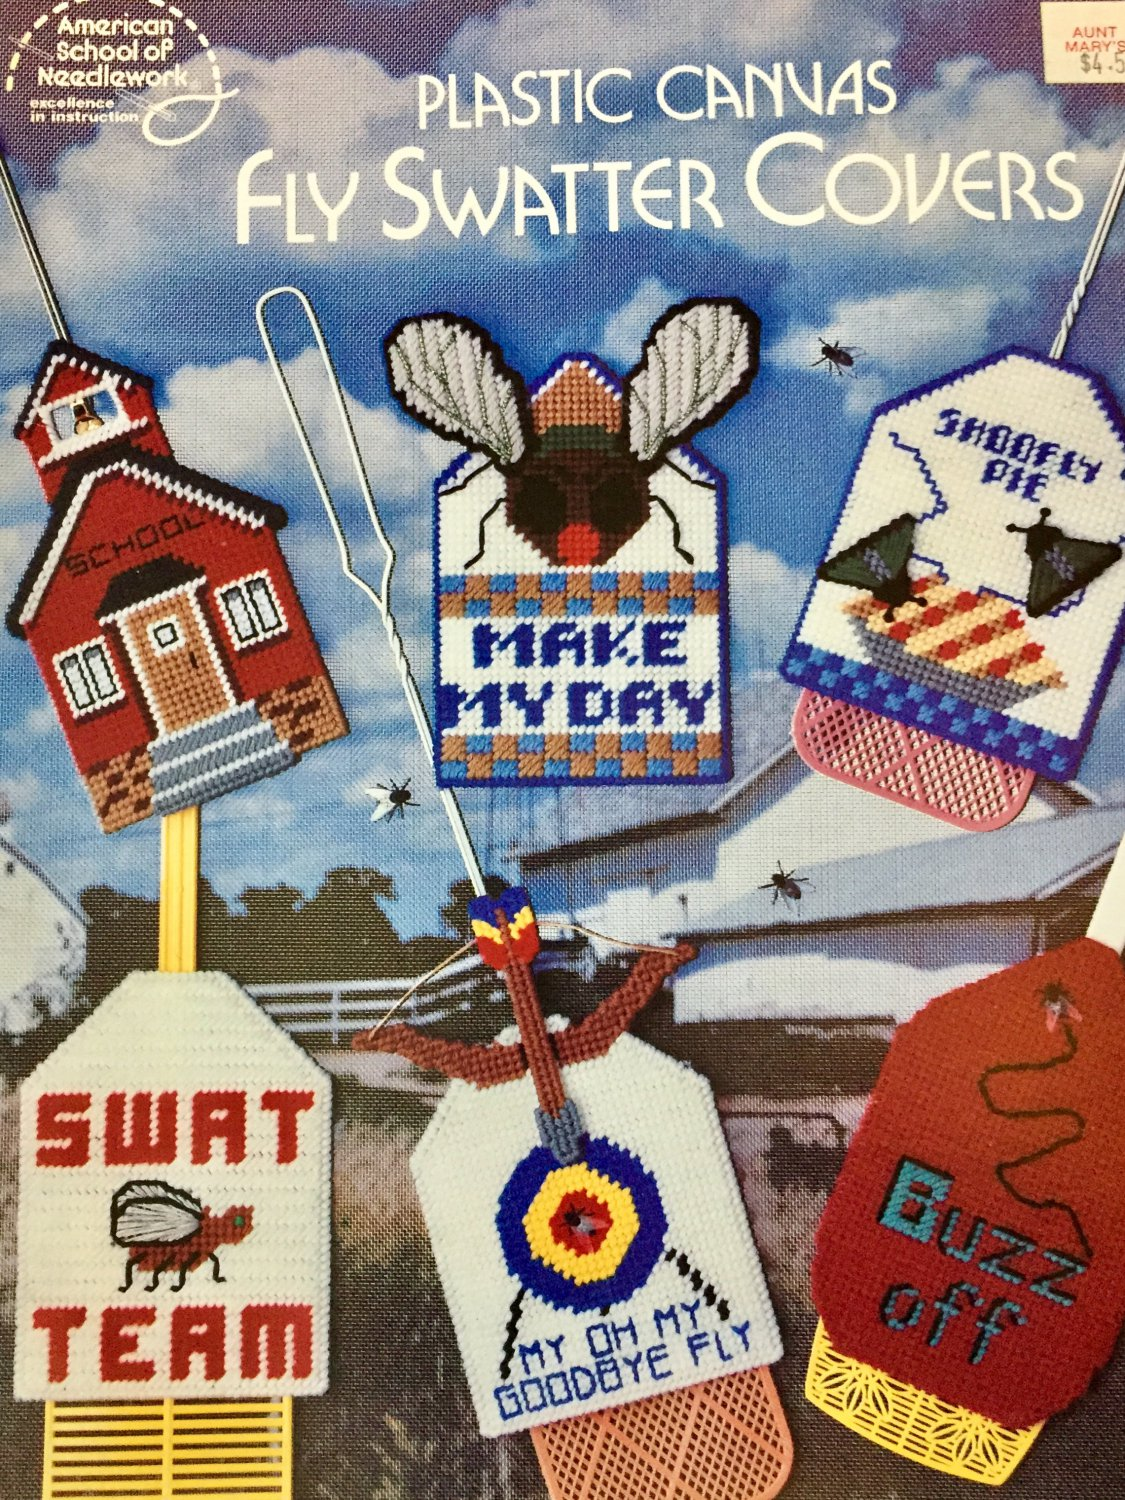 American School of Needlework 3074 Fly Swatter Covers  Plastic Canvas Pattern